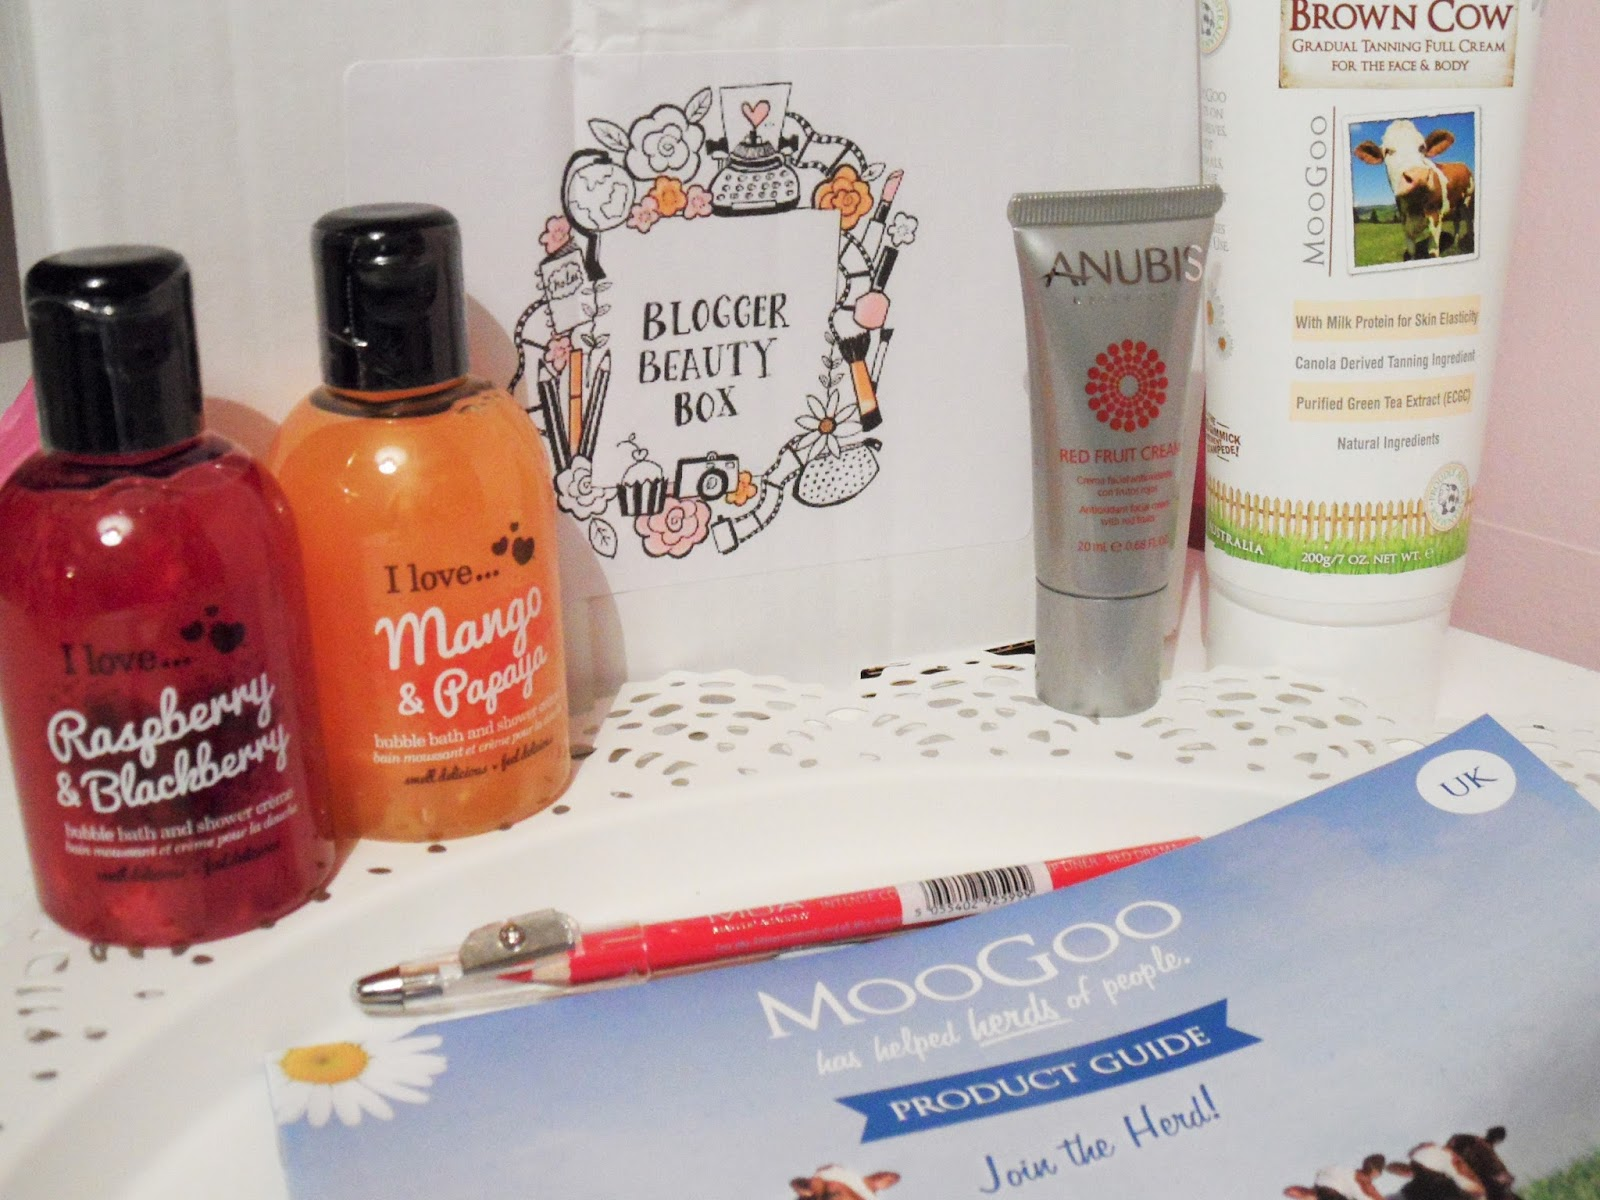 BBBox Blogger Beauty Box January 2016 Review eyelinerflicks.com